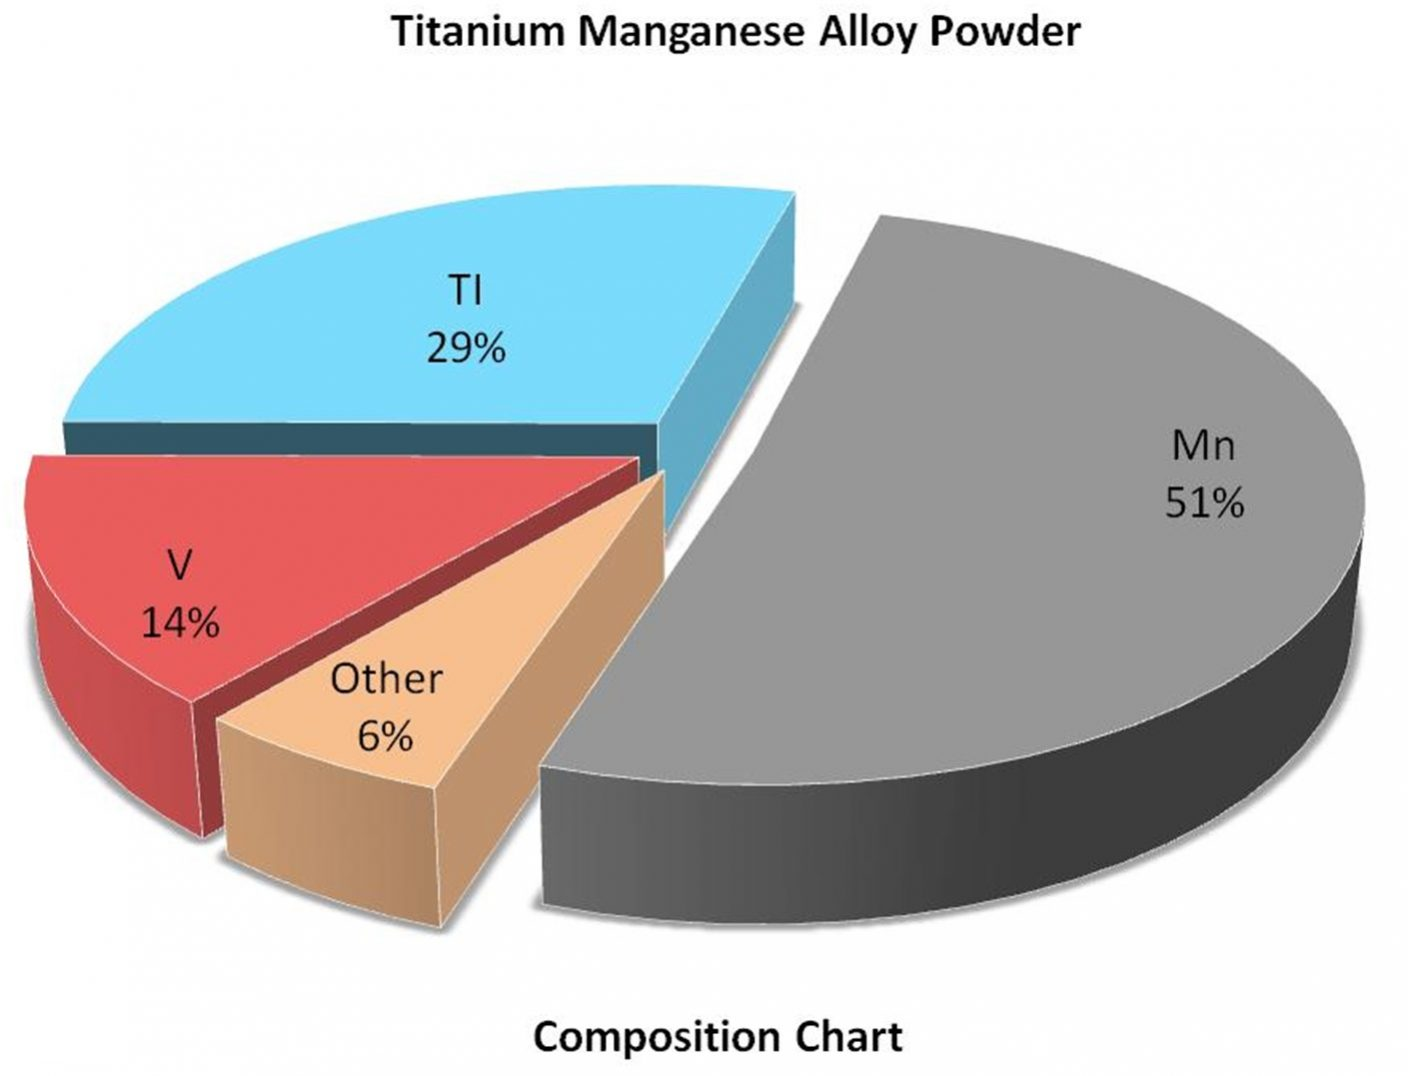 Titanium Manganese Alloy Powder